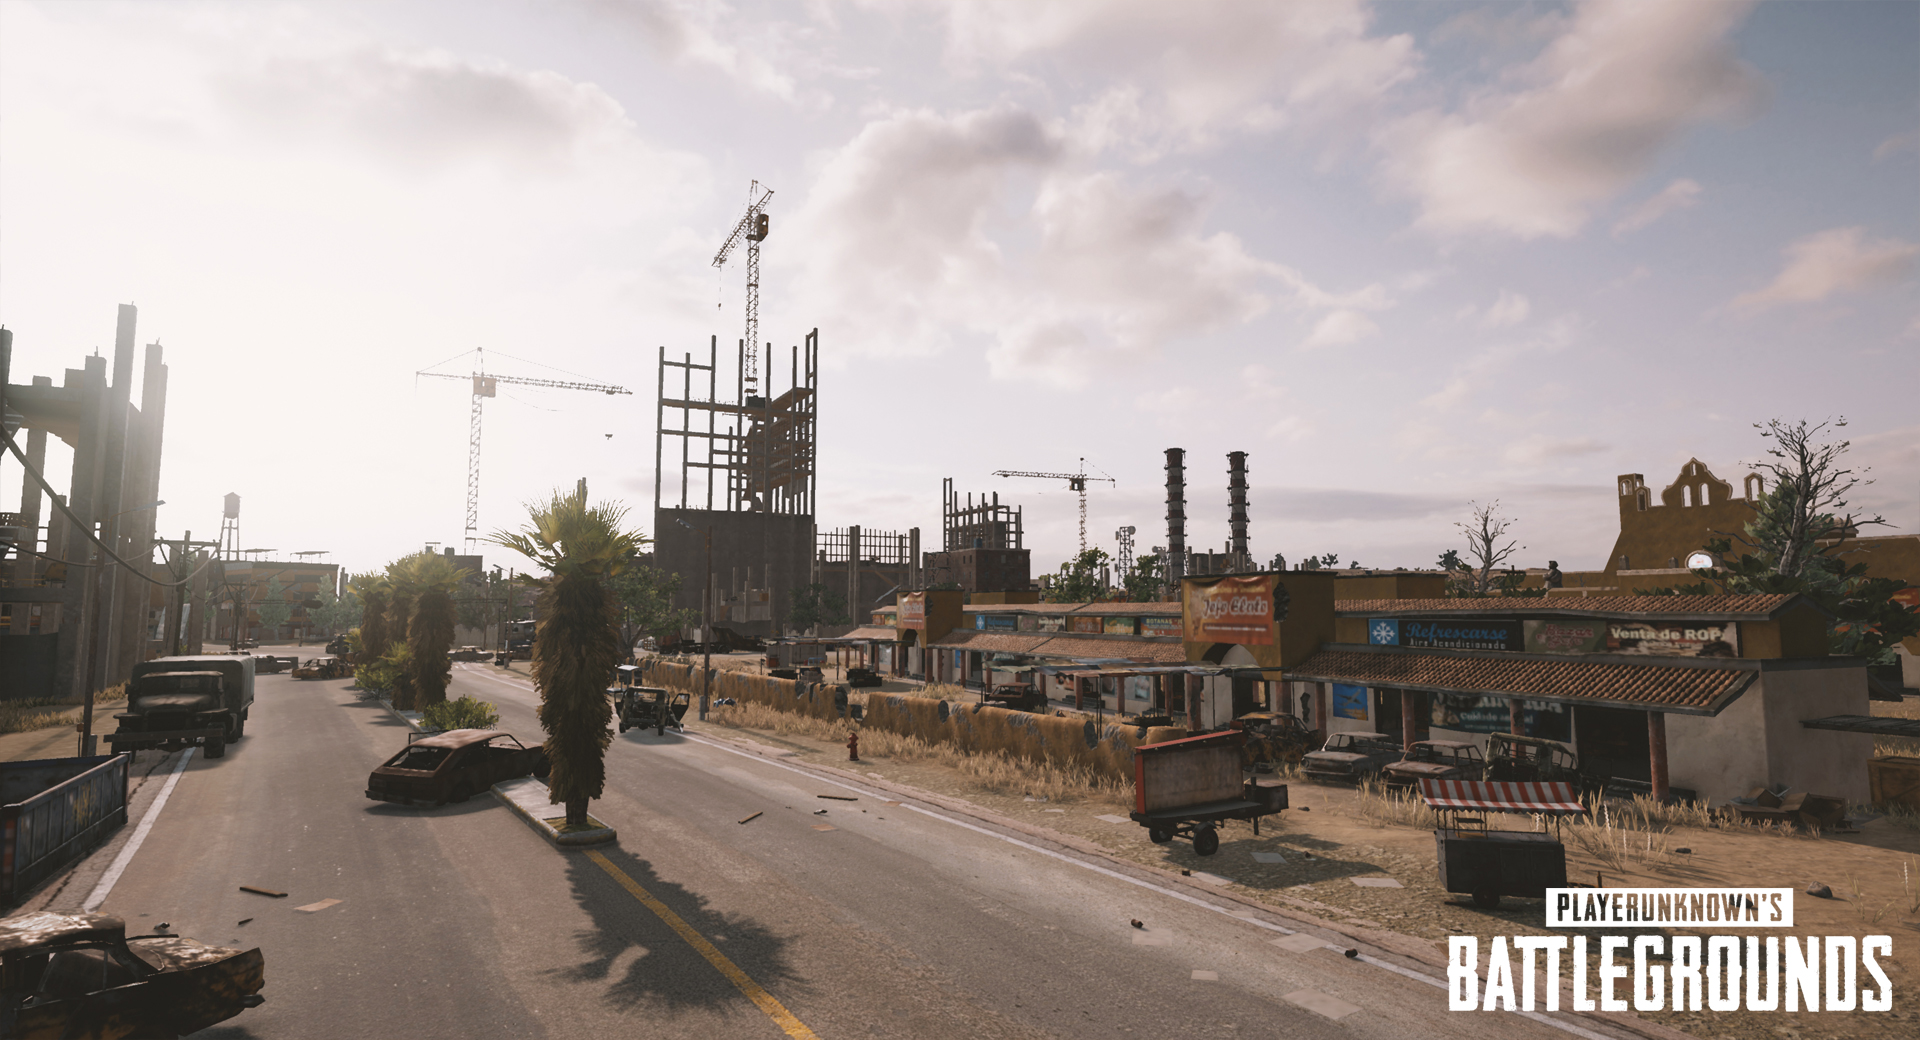 playerunknowns battlegrounds nvidia desert map screenshot 001 - First Five Screenshots Of PUBG's Desert Map